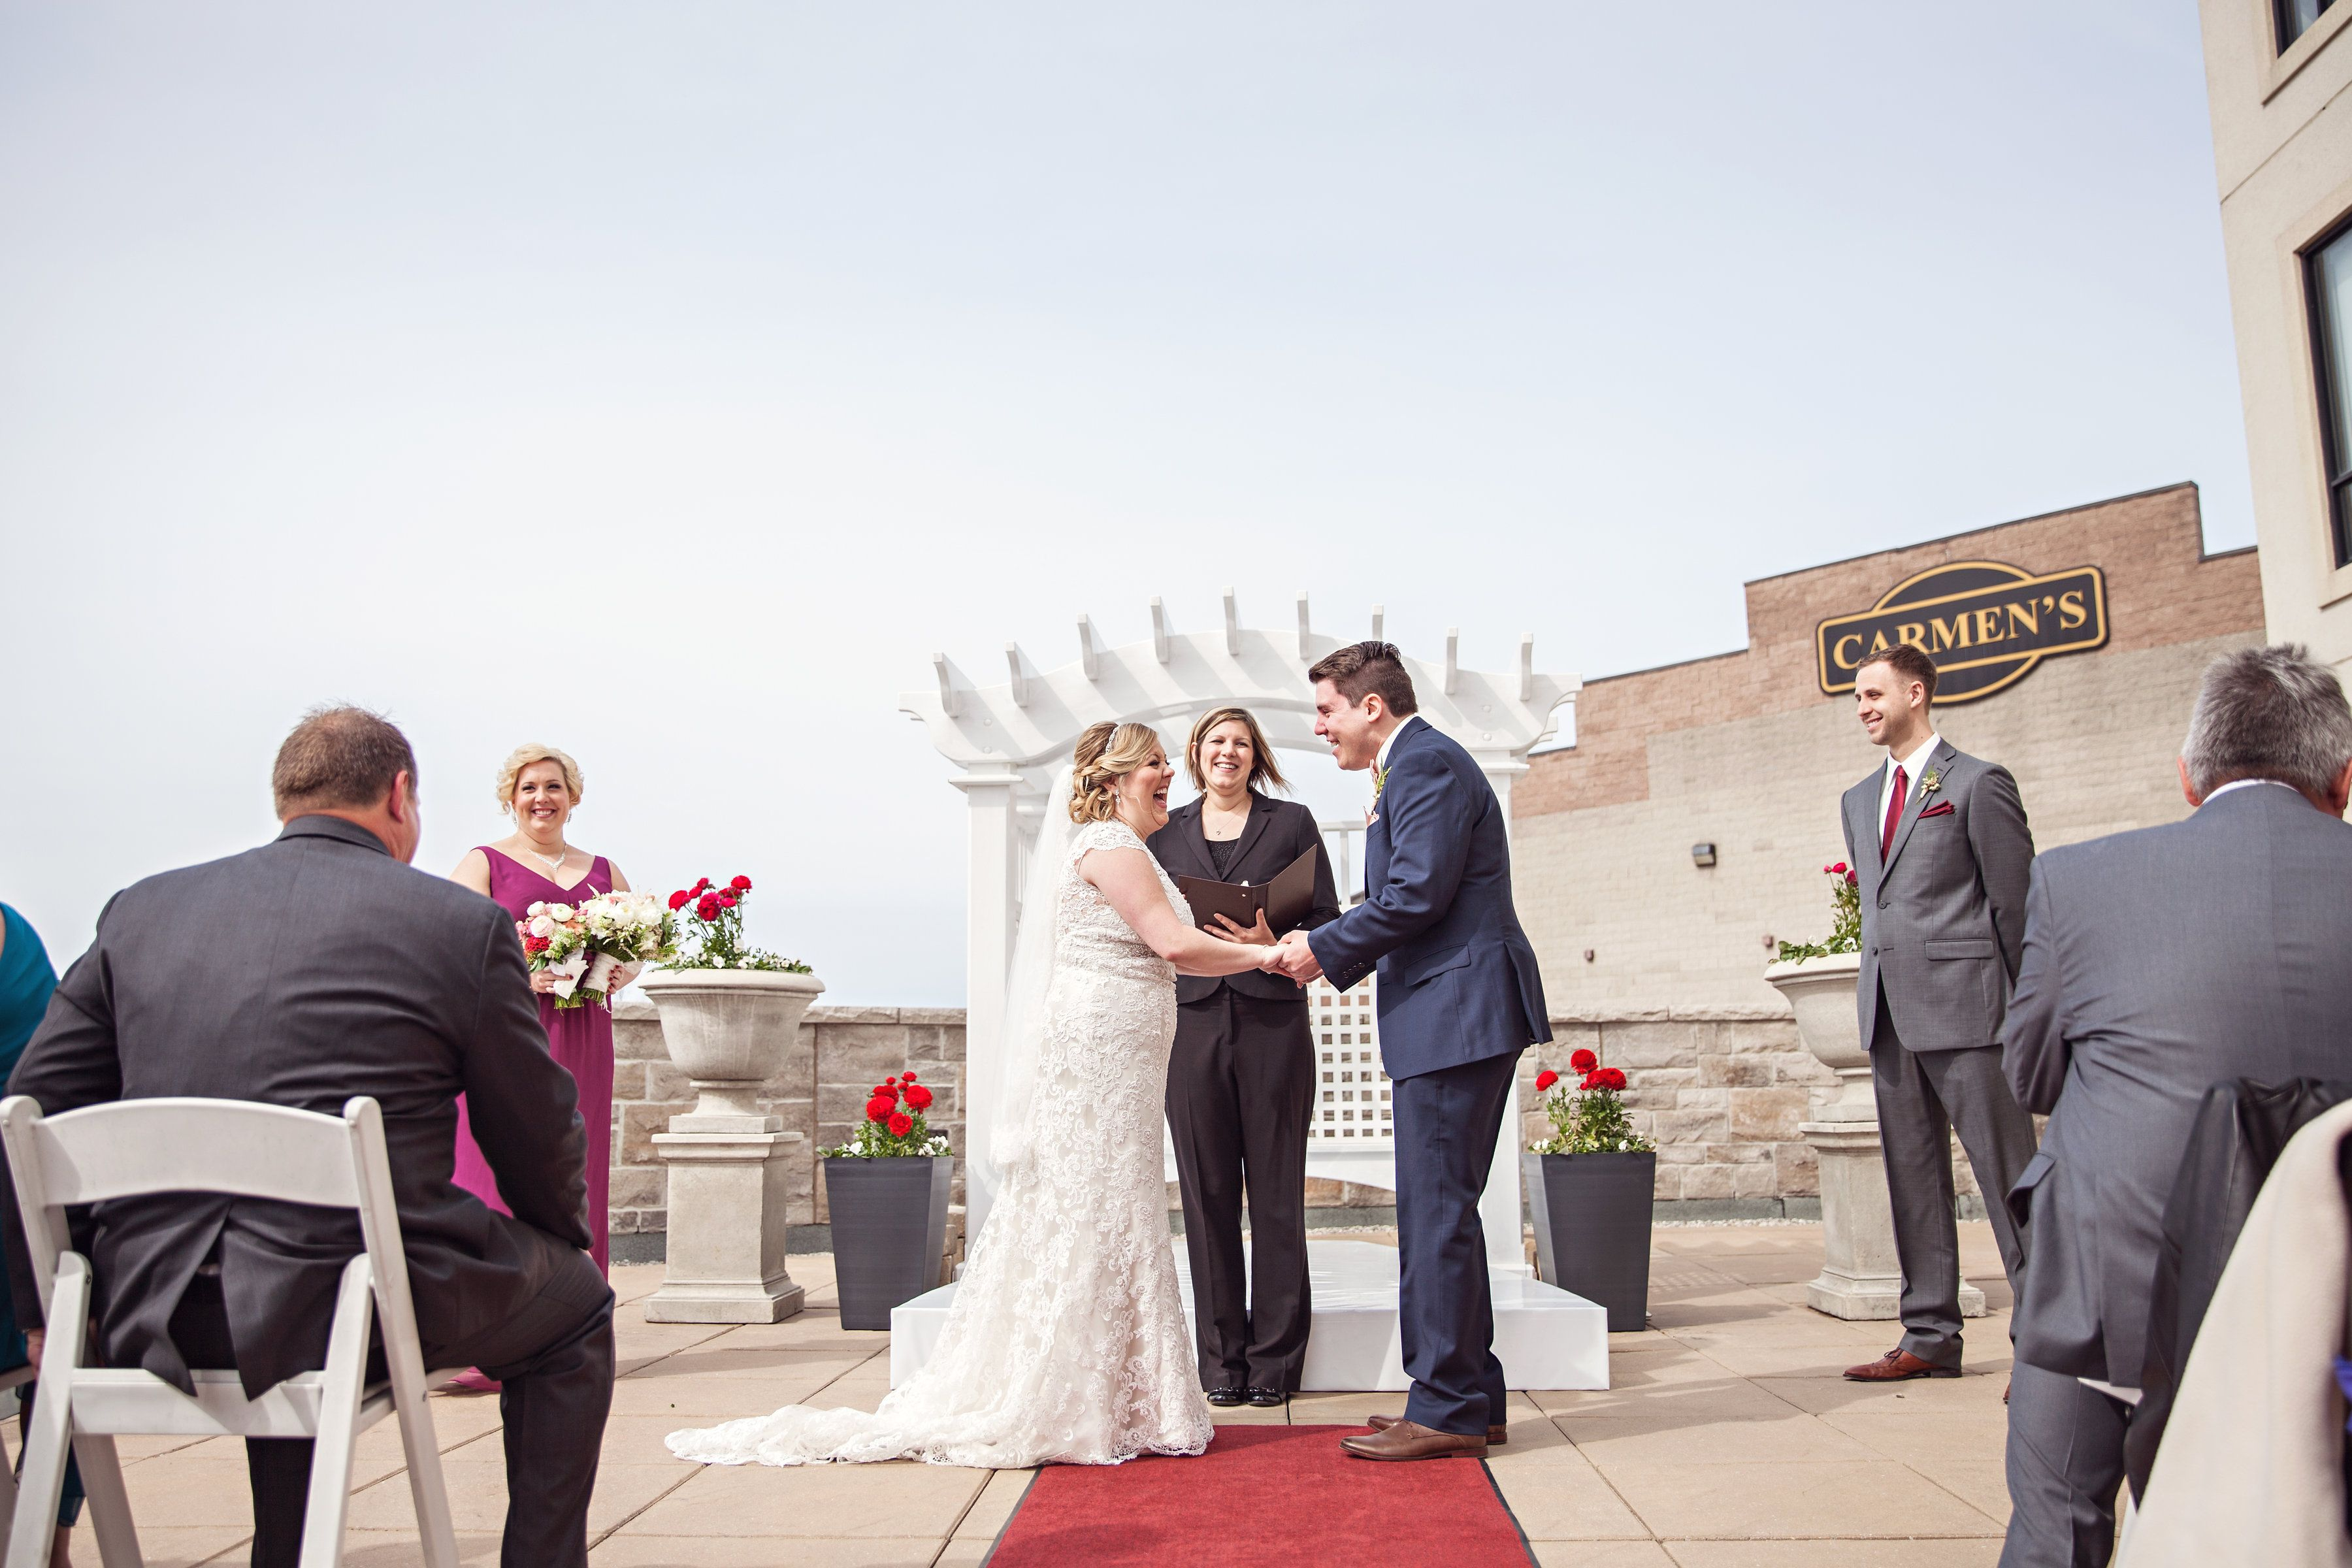 Say I Do On C Hotels S Rooftop Patio In Hamilton Ontario Photography Credit Melissa Miller Photography Momen Wedding Venues Ontario Rooftop Patio Hotel